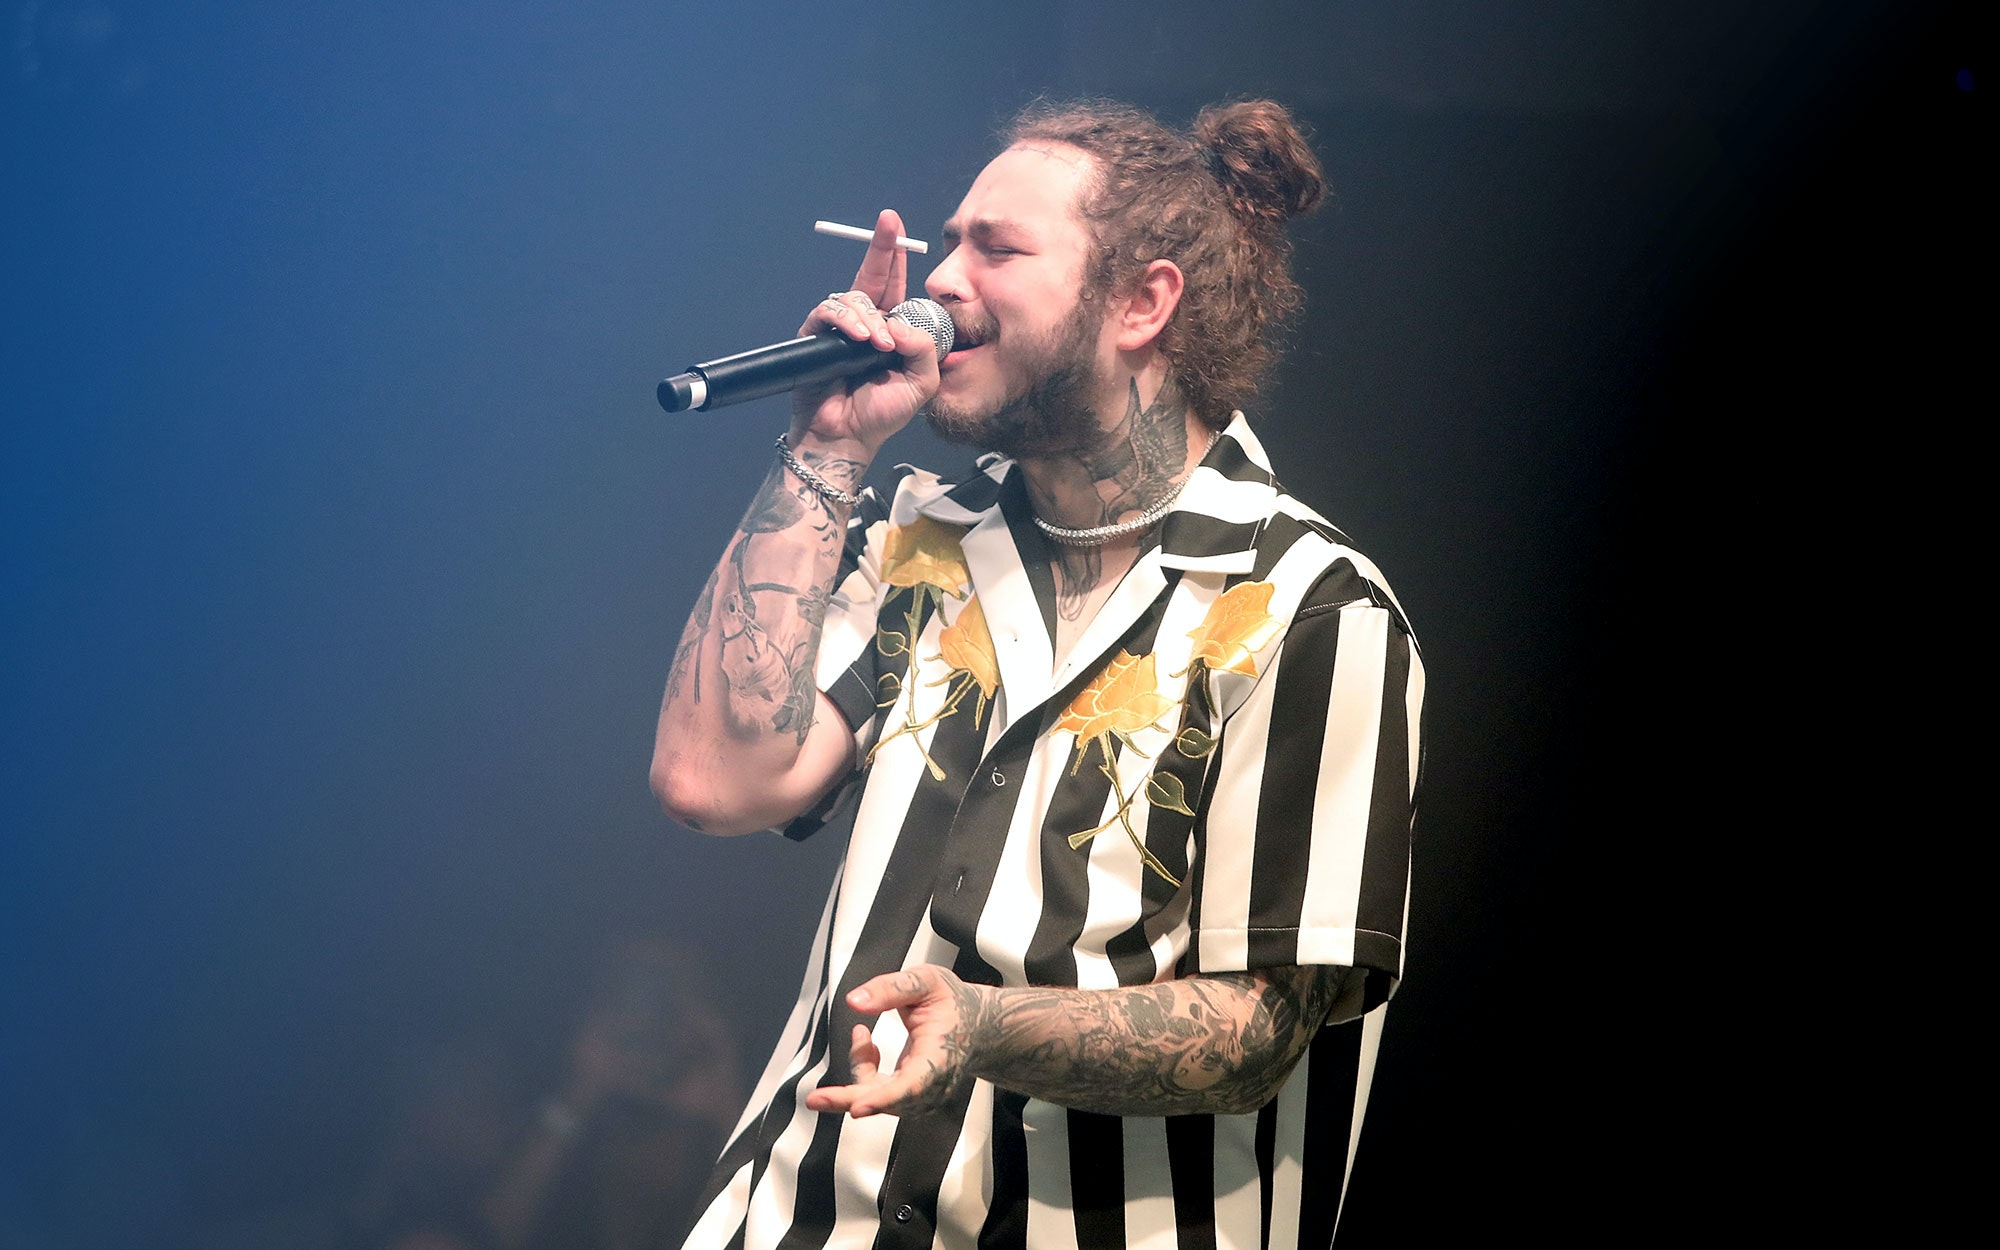 Post Malone S Chart Topping Beerbongs Bentleys Has Sold Fewer Than 200 000 Copies Texas Monthly